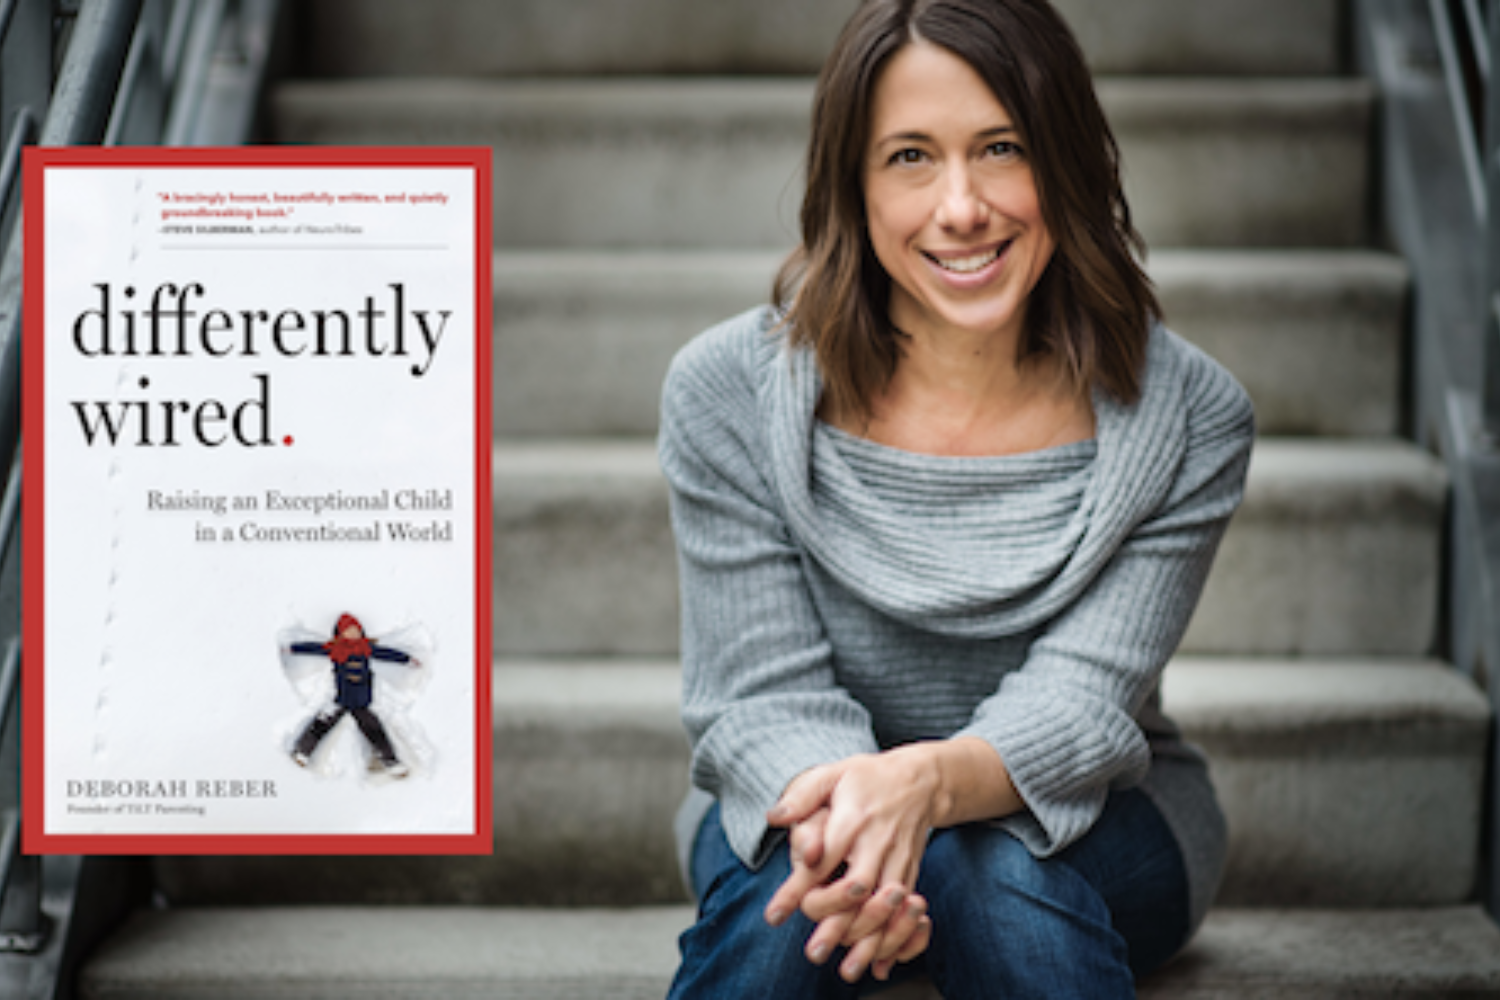 A Helpful New Book for Teachers and Parents of Differently Wired Kids